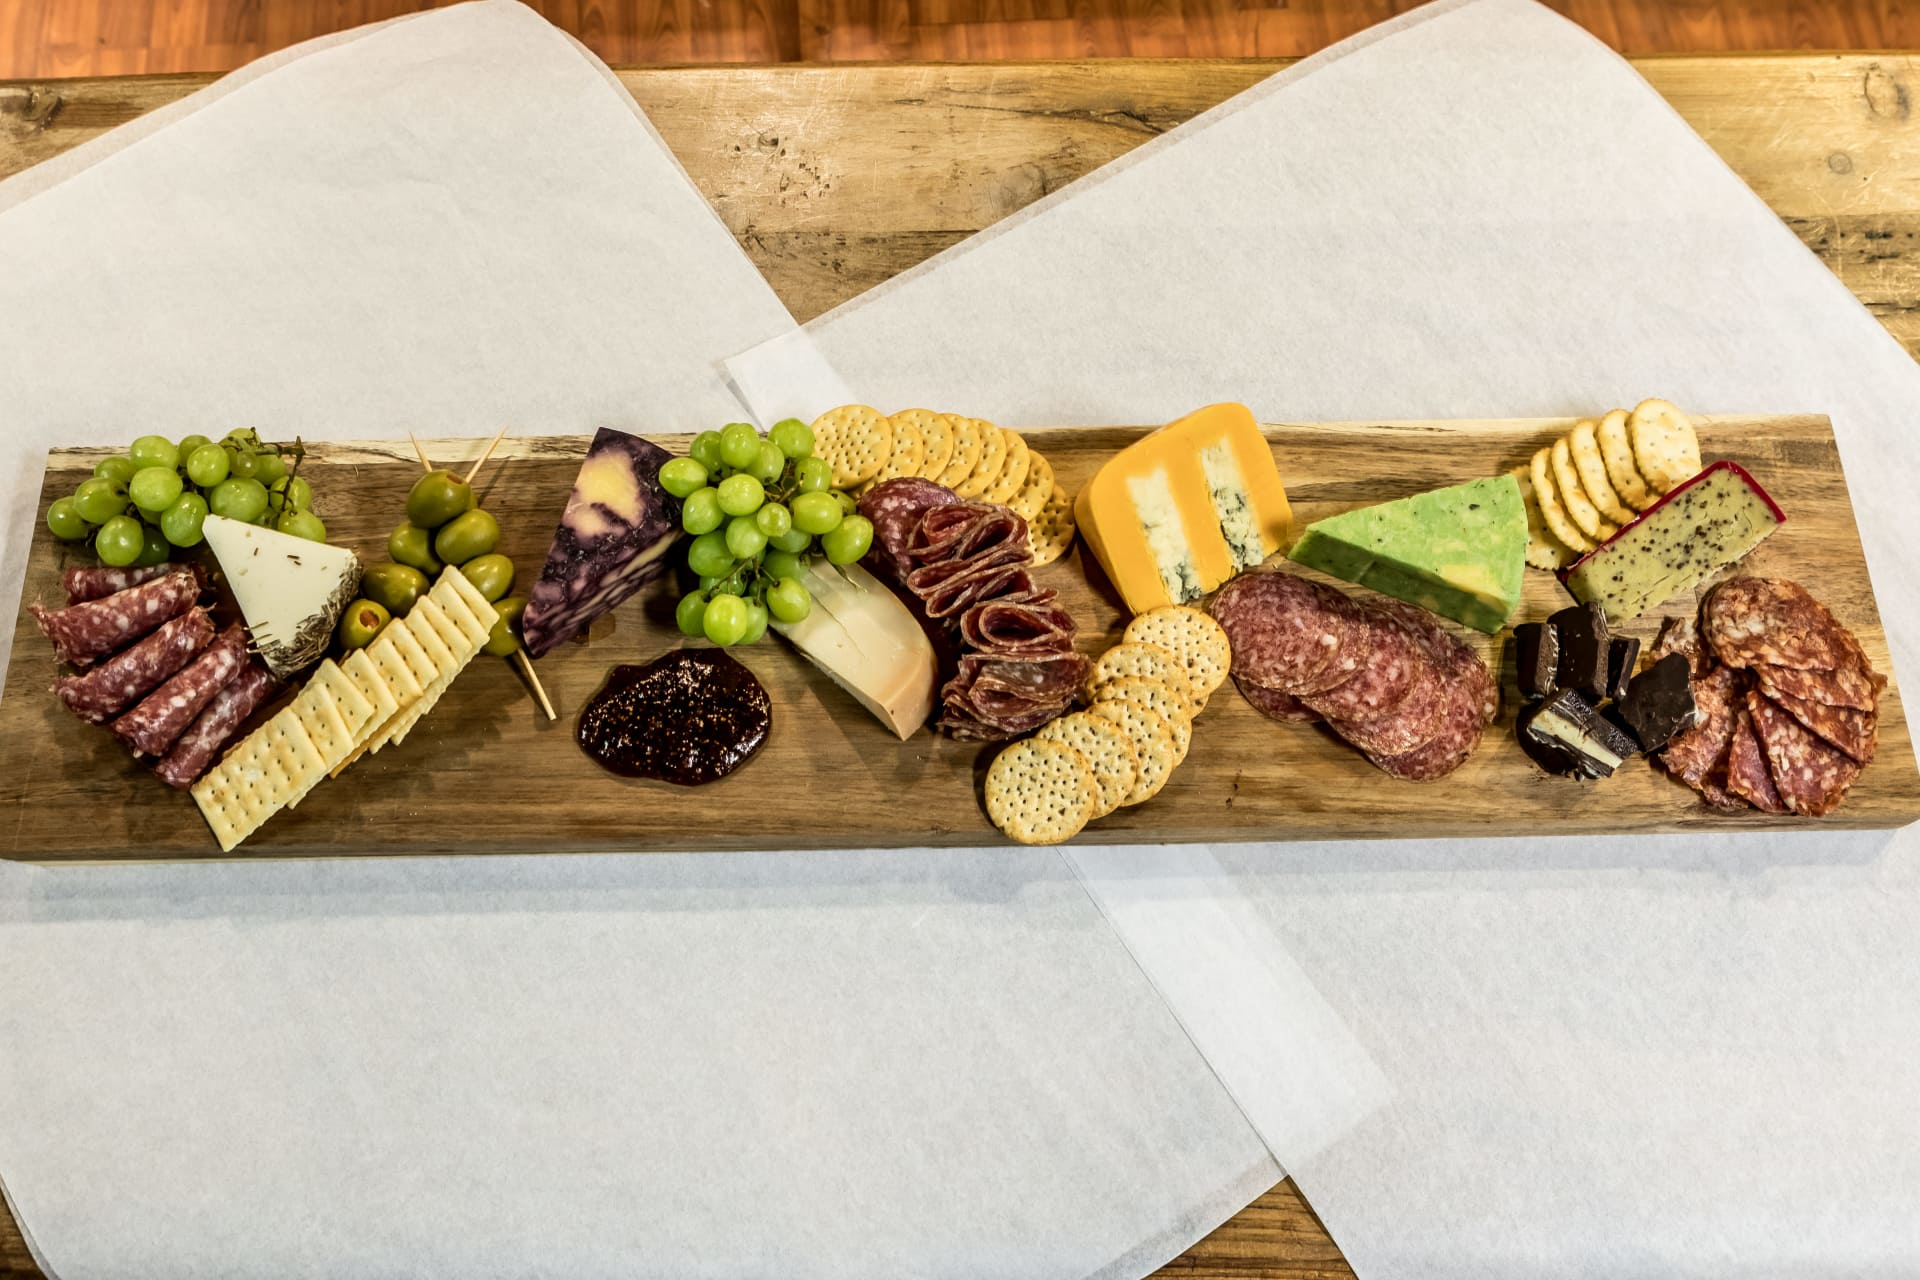 MAGNUM CHEESE AND CHARCUTERIE PLATTER